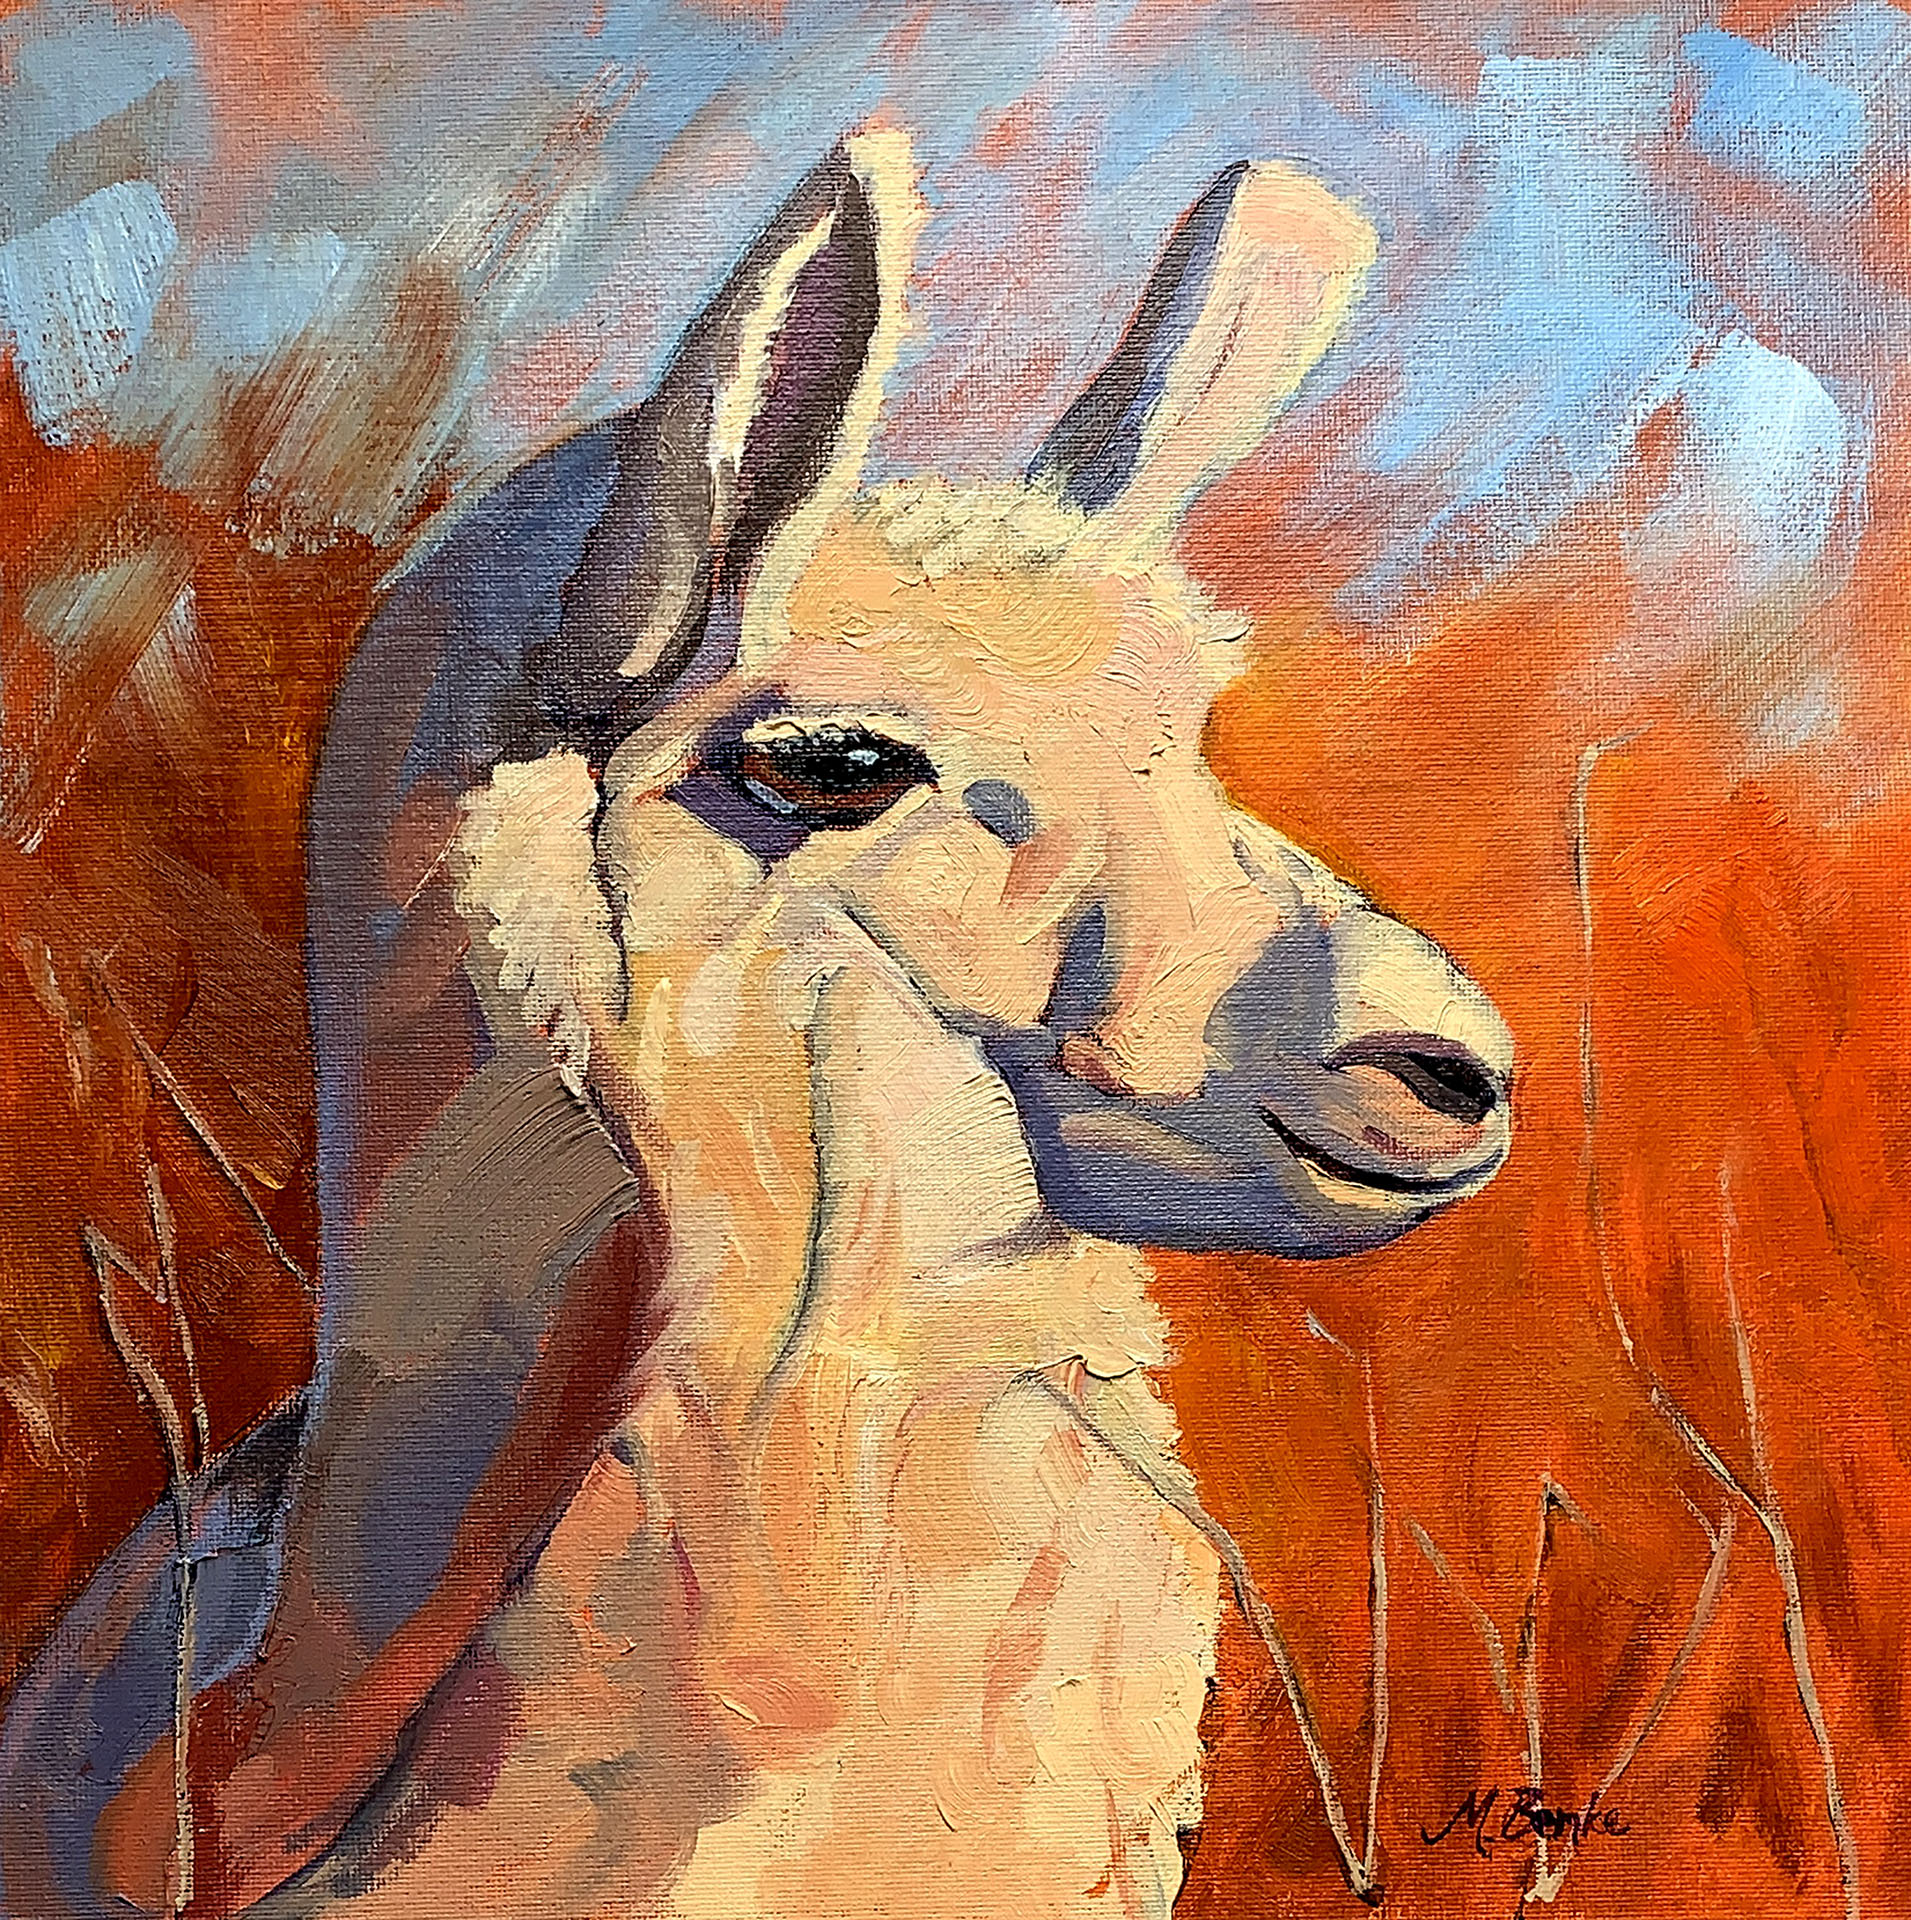 This closeup of a white llama looking into the distance features bold brush strokes and colors to depict the shaggy fur and light and shadows with a vibrant orange backdrop and complementary blue sky by Mary Benke